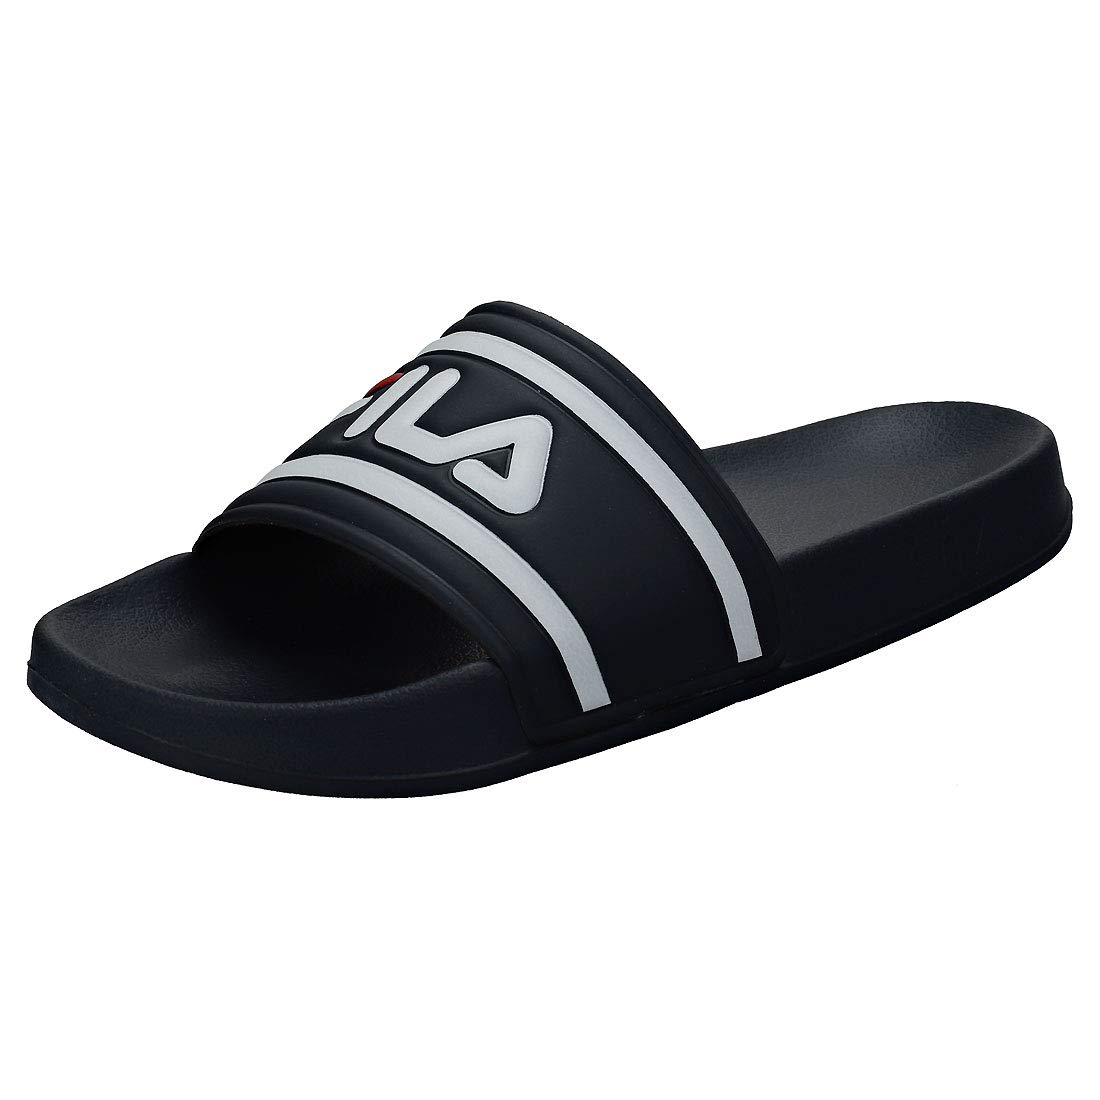 08cf41dbc Fila Flip Flops – Morro Bay Slipper blue white size  45  Amazon.com.au   Fashion